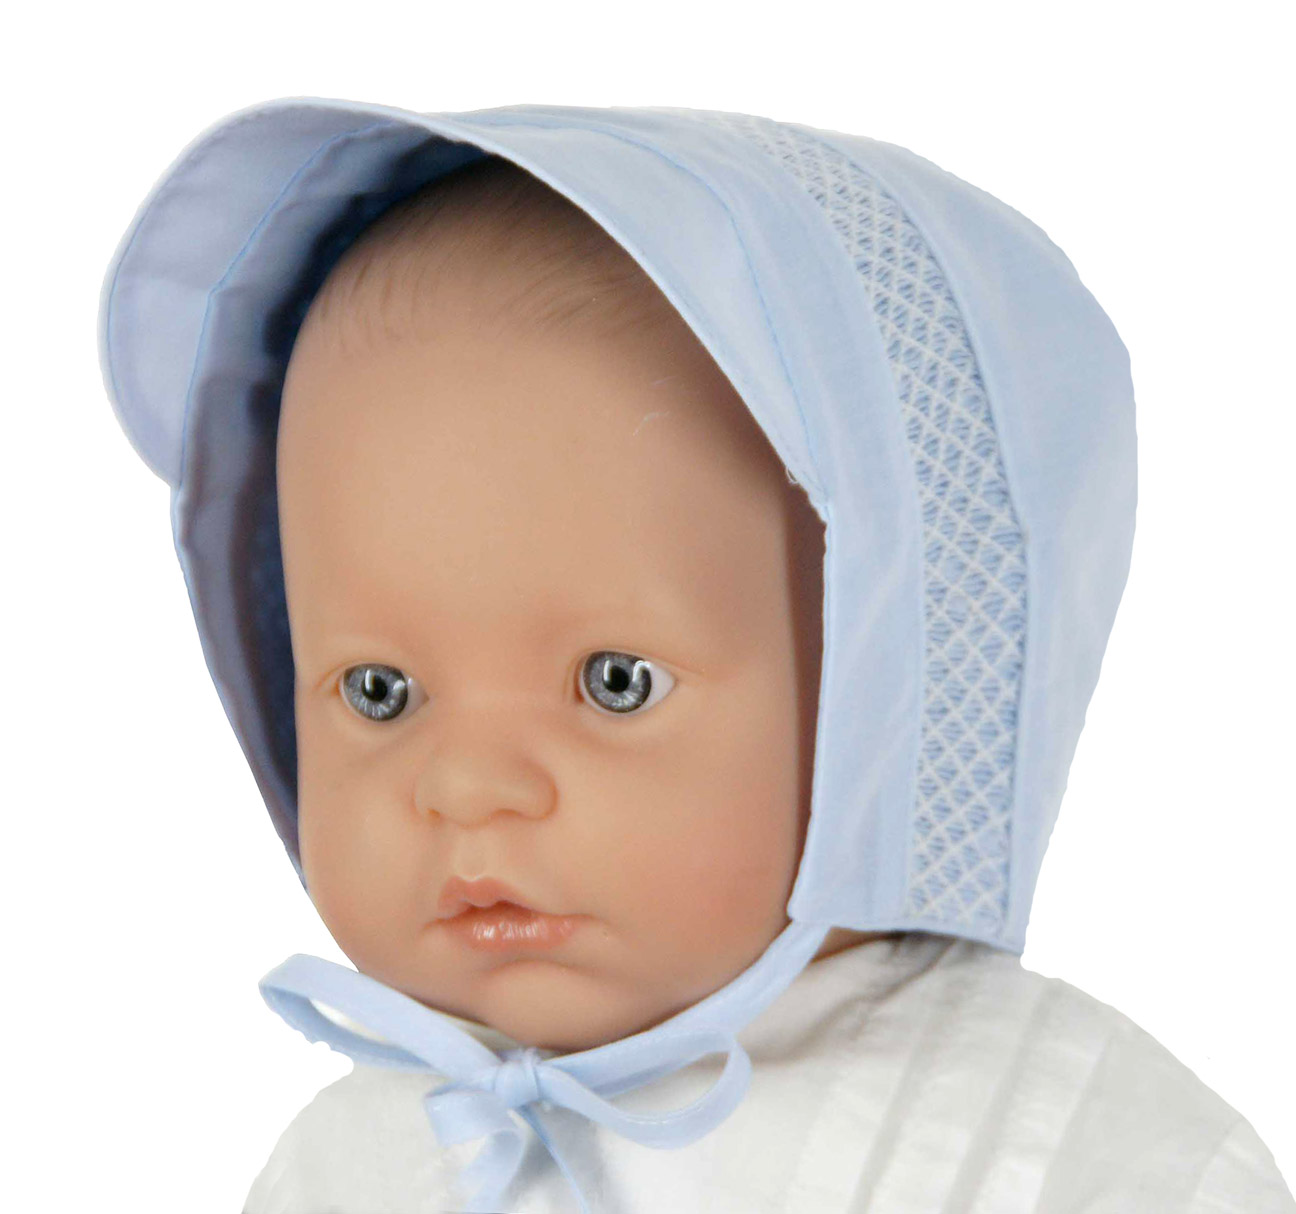 06d513a5278 Baby Hats  Baby Christening Hats  Feltman Brothers Baby Hats